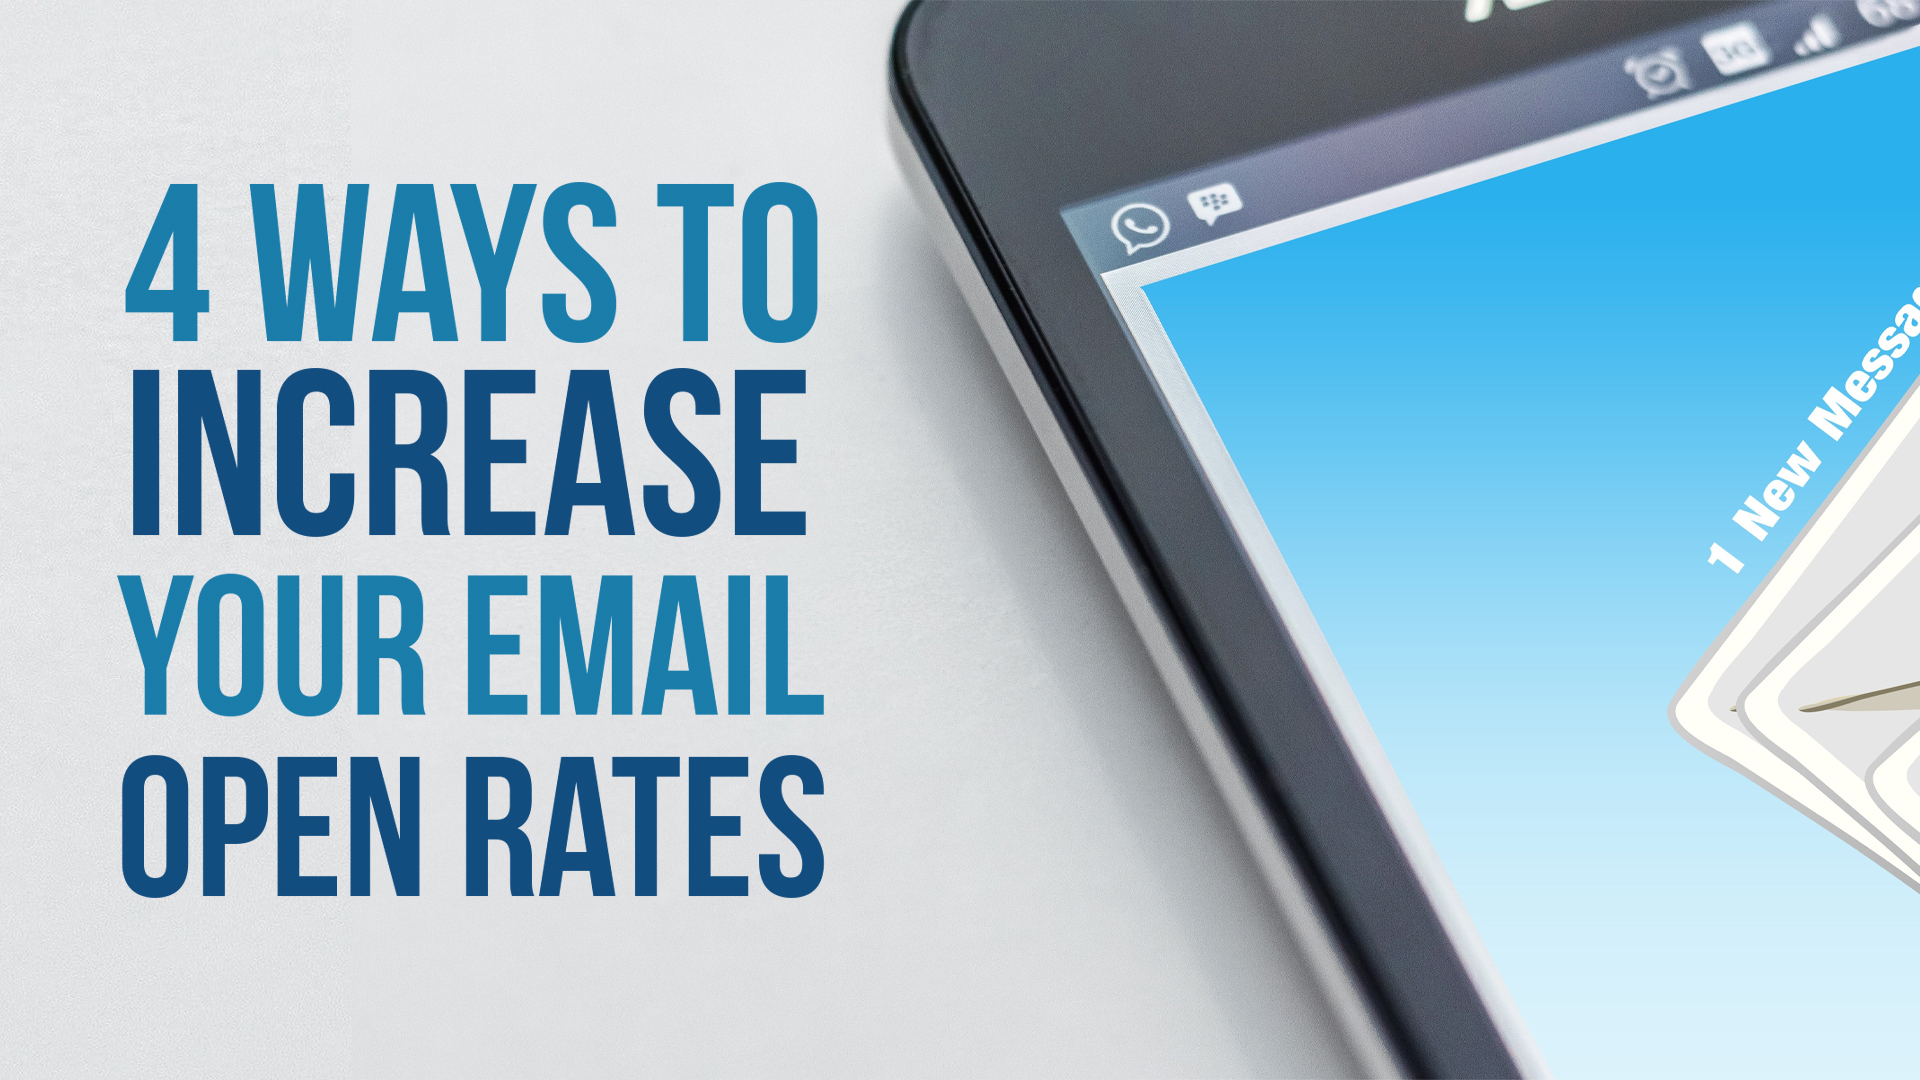 4 Ways to Increase Your Email Open Rates